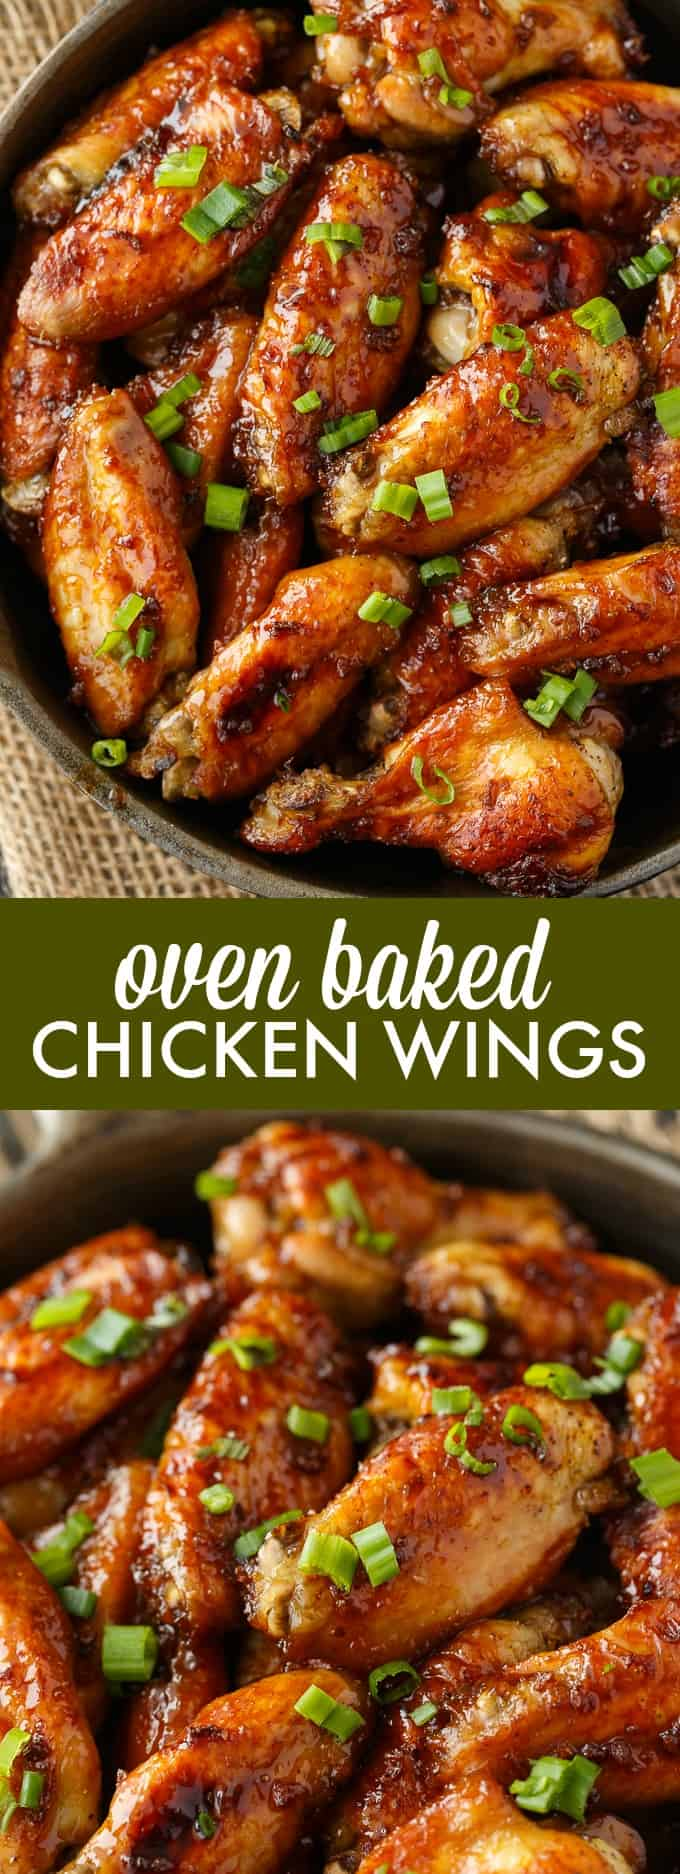 flamingo chicken wings cooking instructions